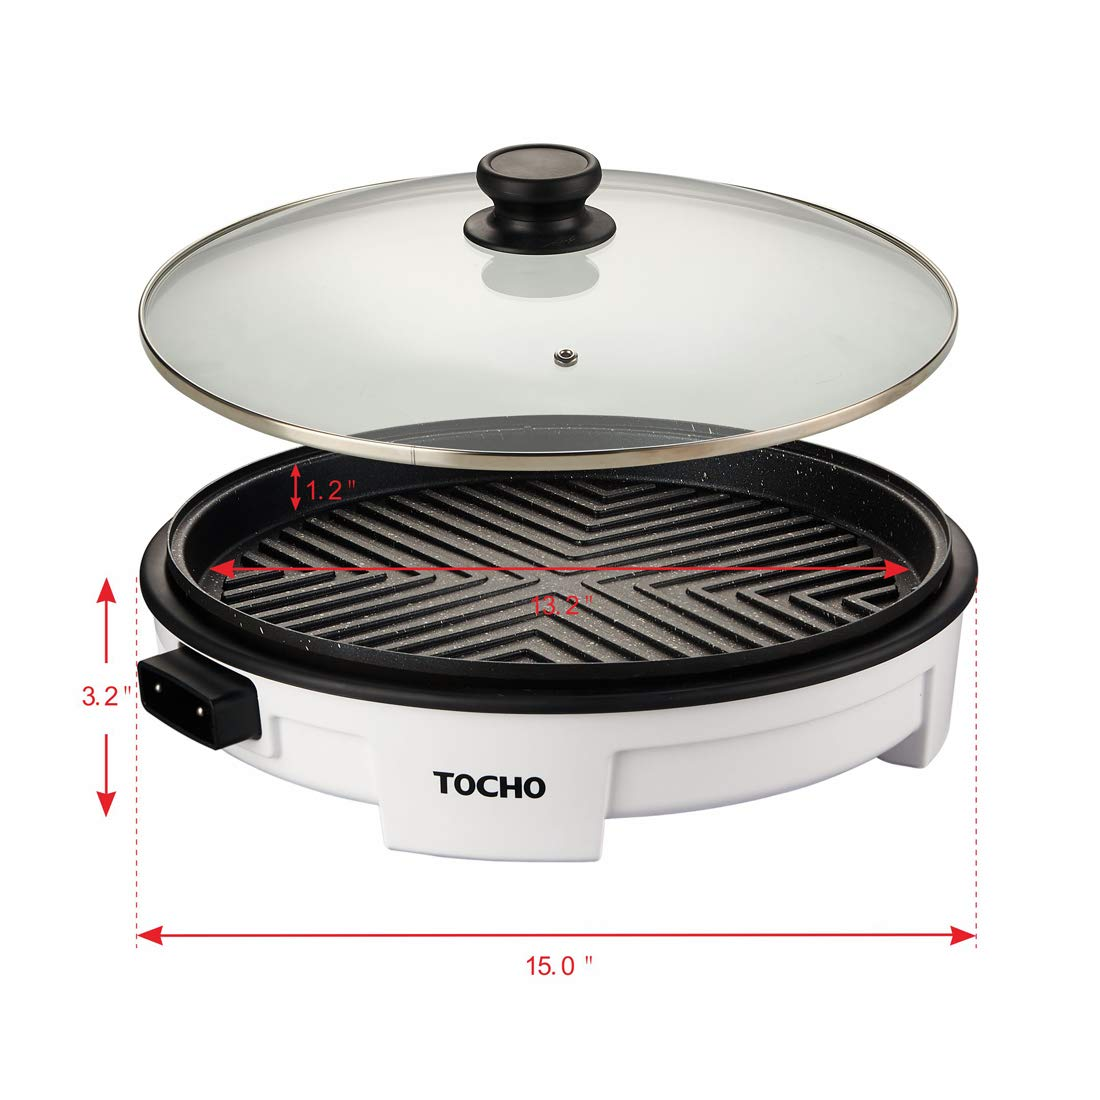 Electric Griddles,Electric Indoor Grill,Electric Frying Pan with Lid, Heating Smokeless Table Grill, Non-stick Easy to Clean BBQ Grill, for Party/Home, ETL Certified (TOCHO HY-6504,14''/120V/1500W)